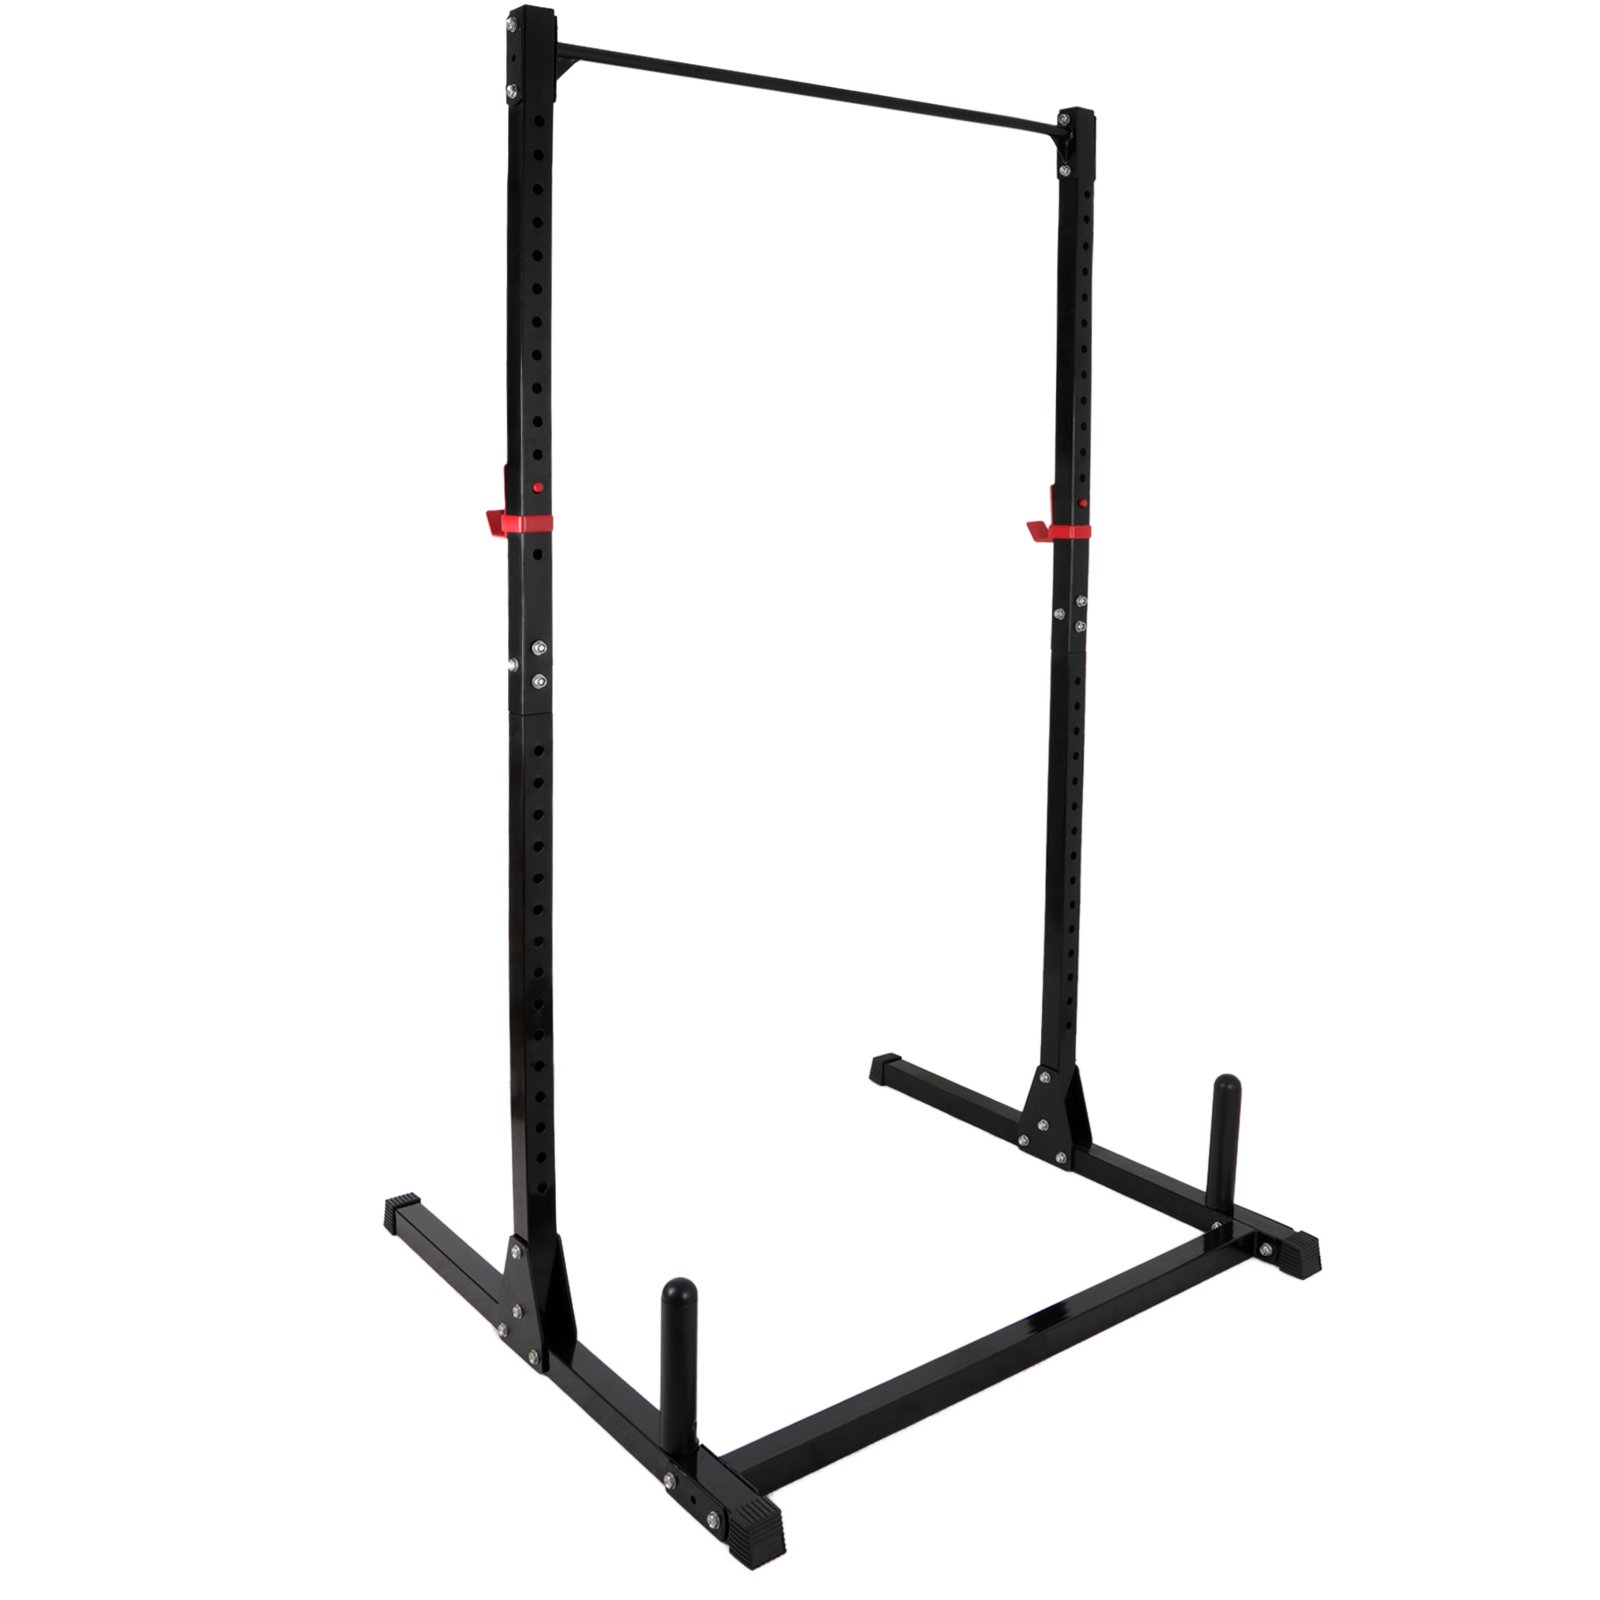 ZENY Height Adjustable Weight Rack Cage Exercise Fitness Stand Squat Bench Weightlifting Pull UP Stand Power Tower Strength Training Workout Station